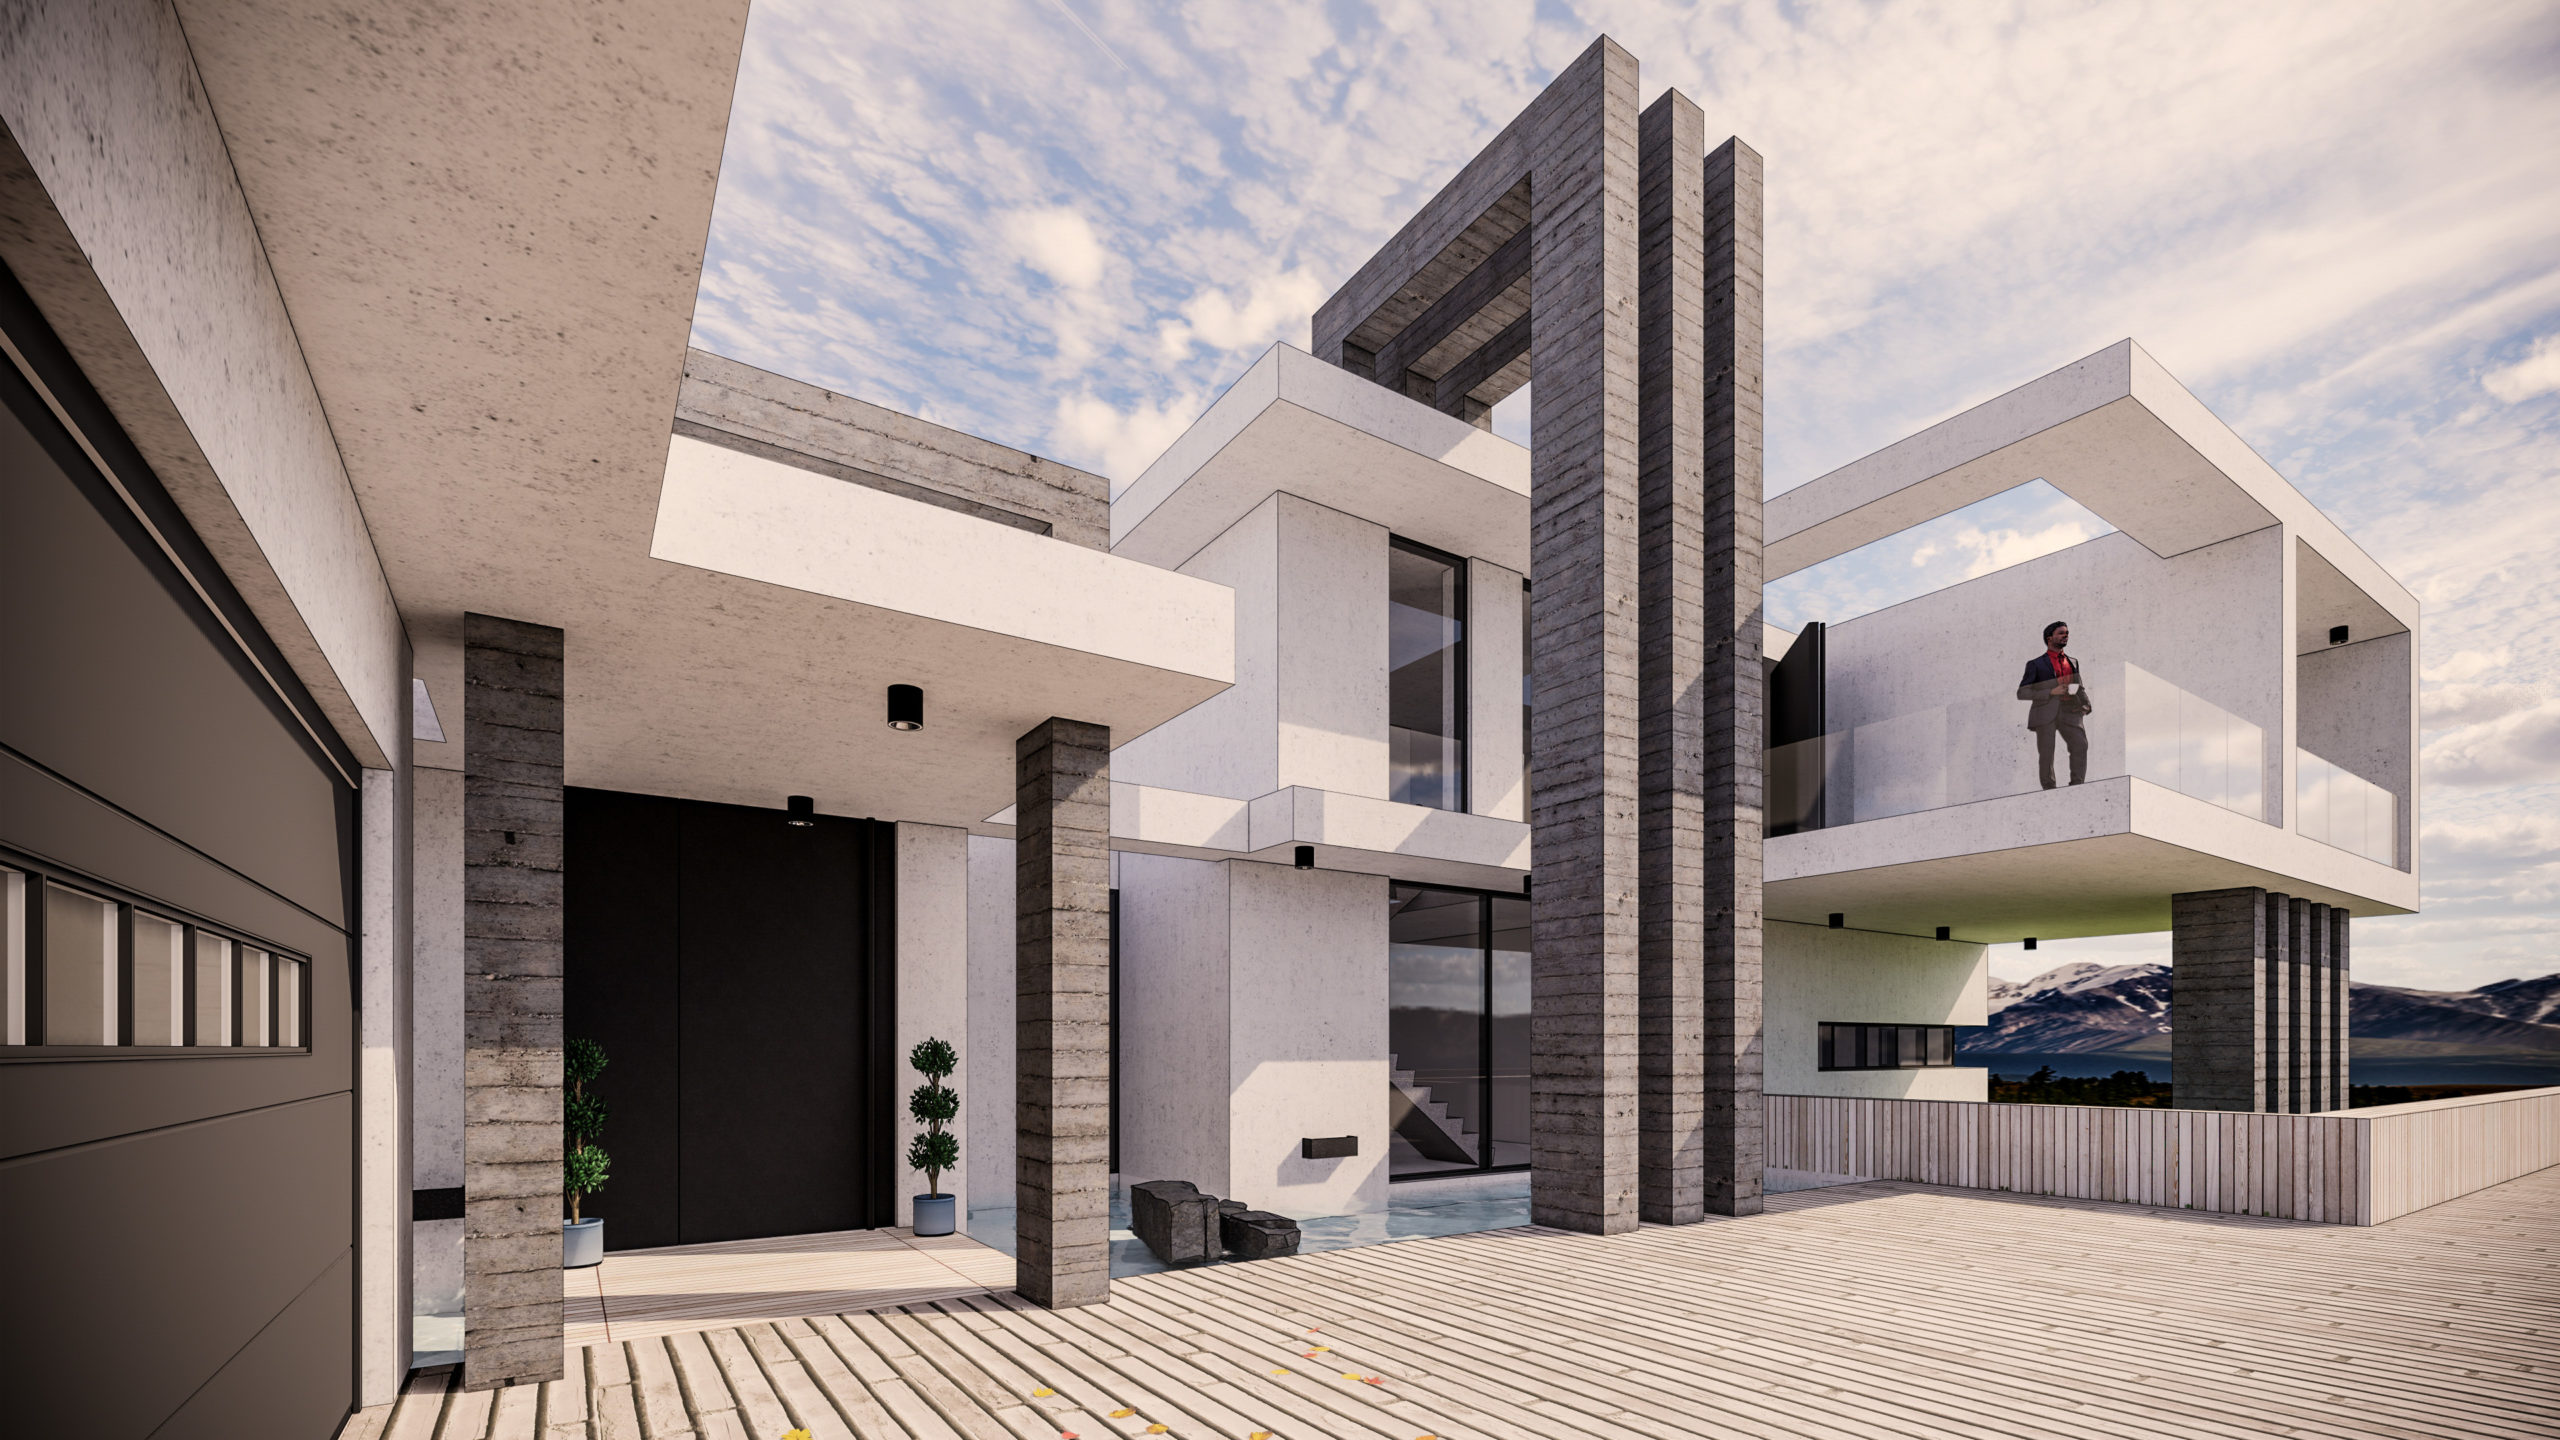 Callum Grochla's winning house design in the 13 to 17-year-old category